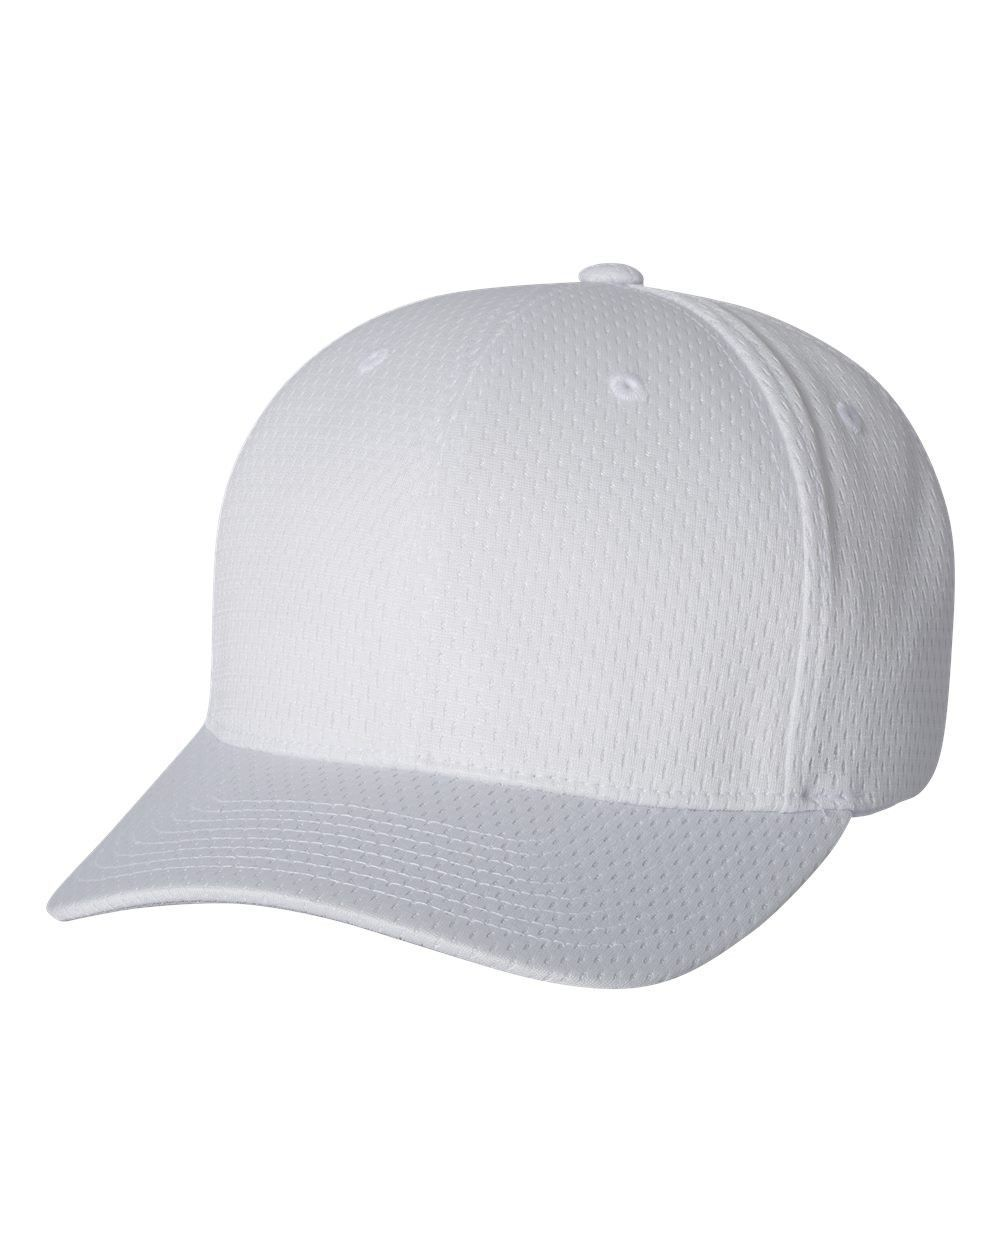 528bd96b Yupoong - Athletic Pro Mesh Cap with Velcro Closure - 6008 | Caps ...